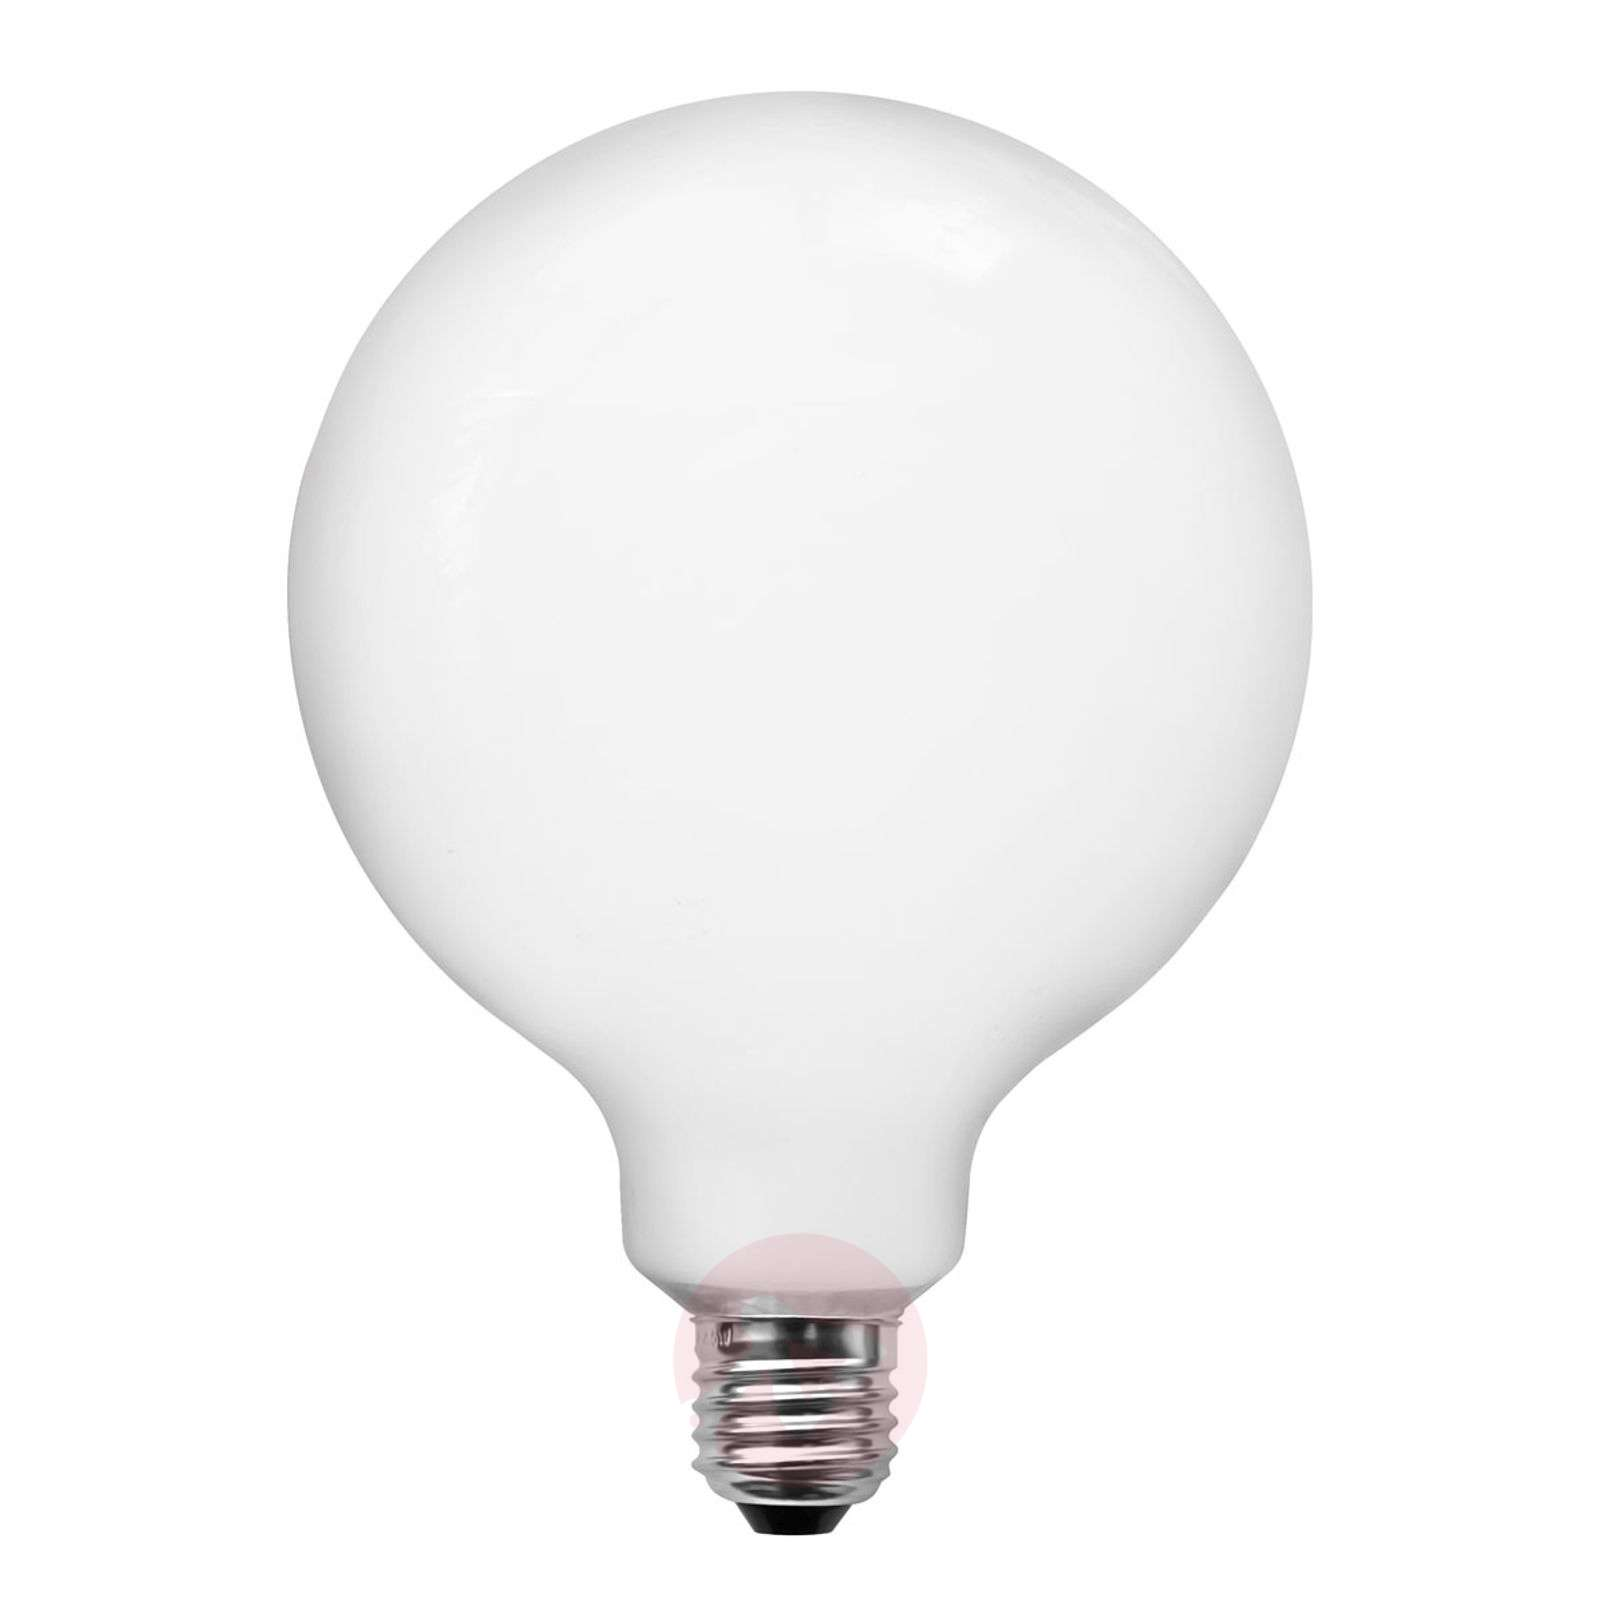 Lampe LED globe E27 4W G95 opale à int variable-8536021-01